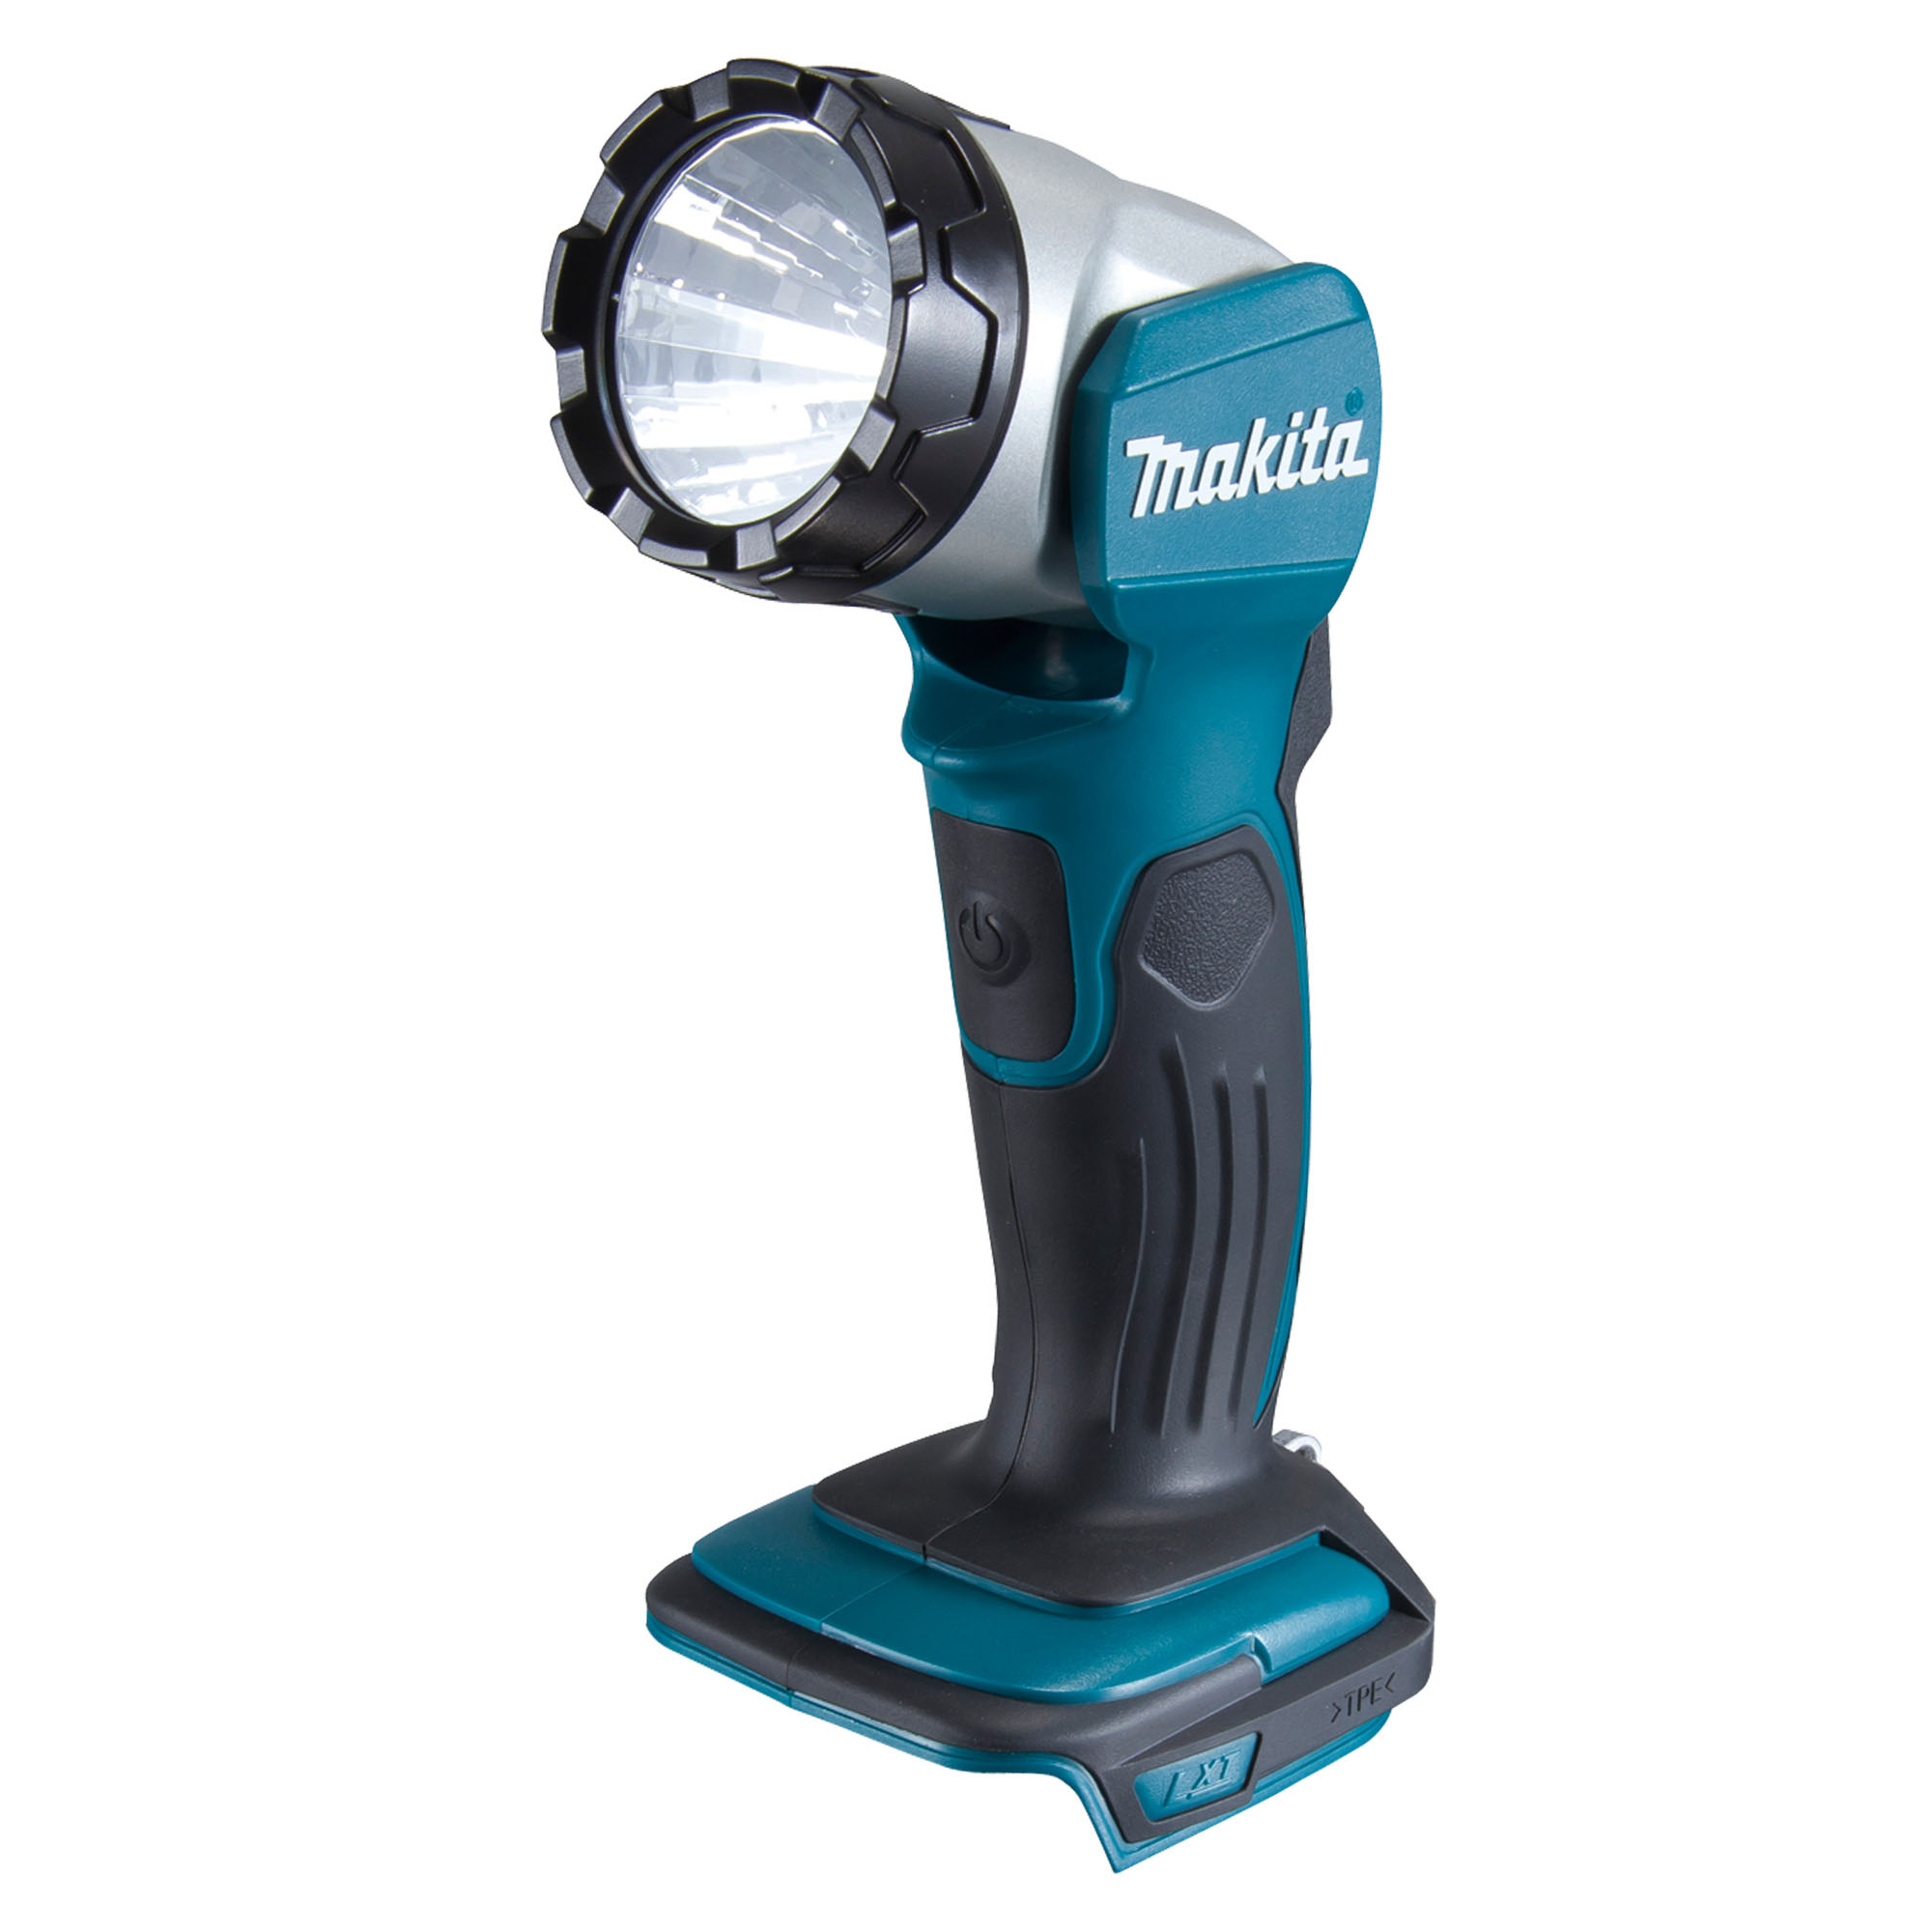 Makita Dml802 Makita 14 4v 18v Led 9 Position Torch Body Only